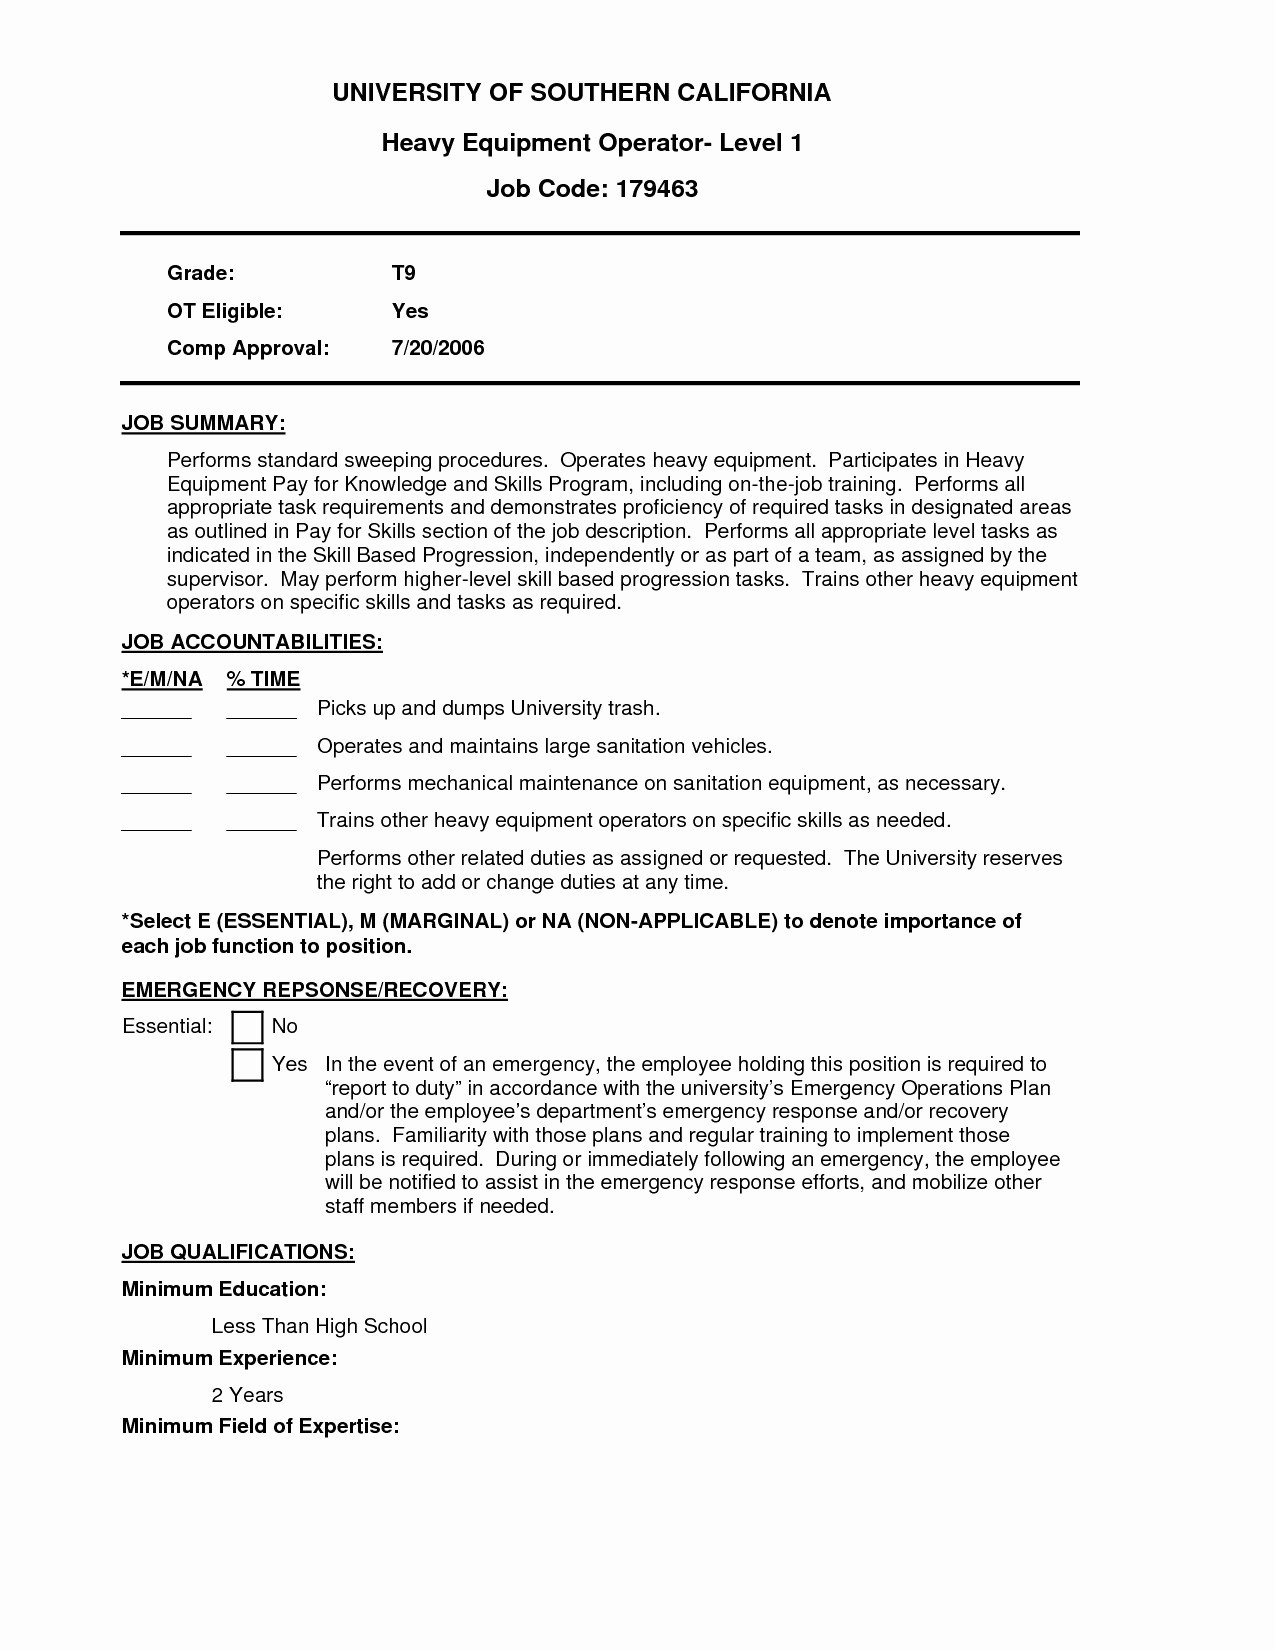 9 machine operator job description for resume samples